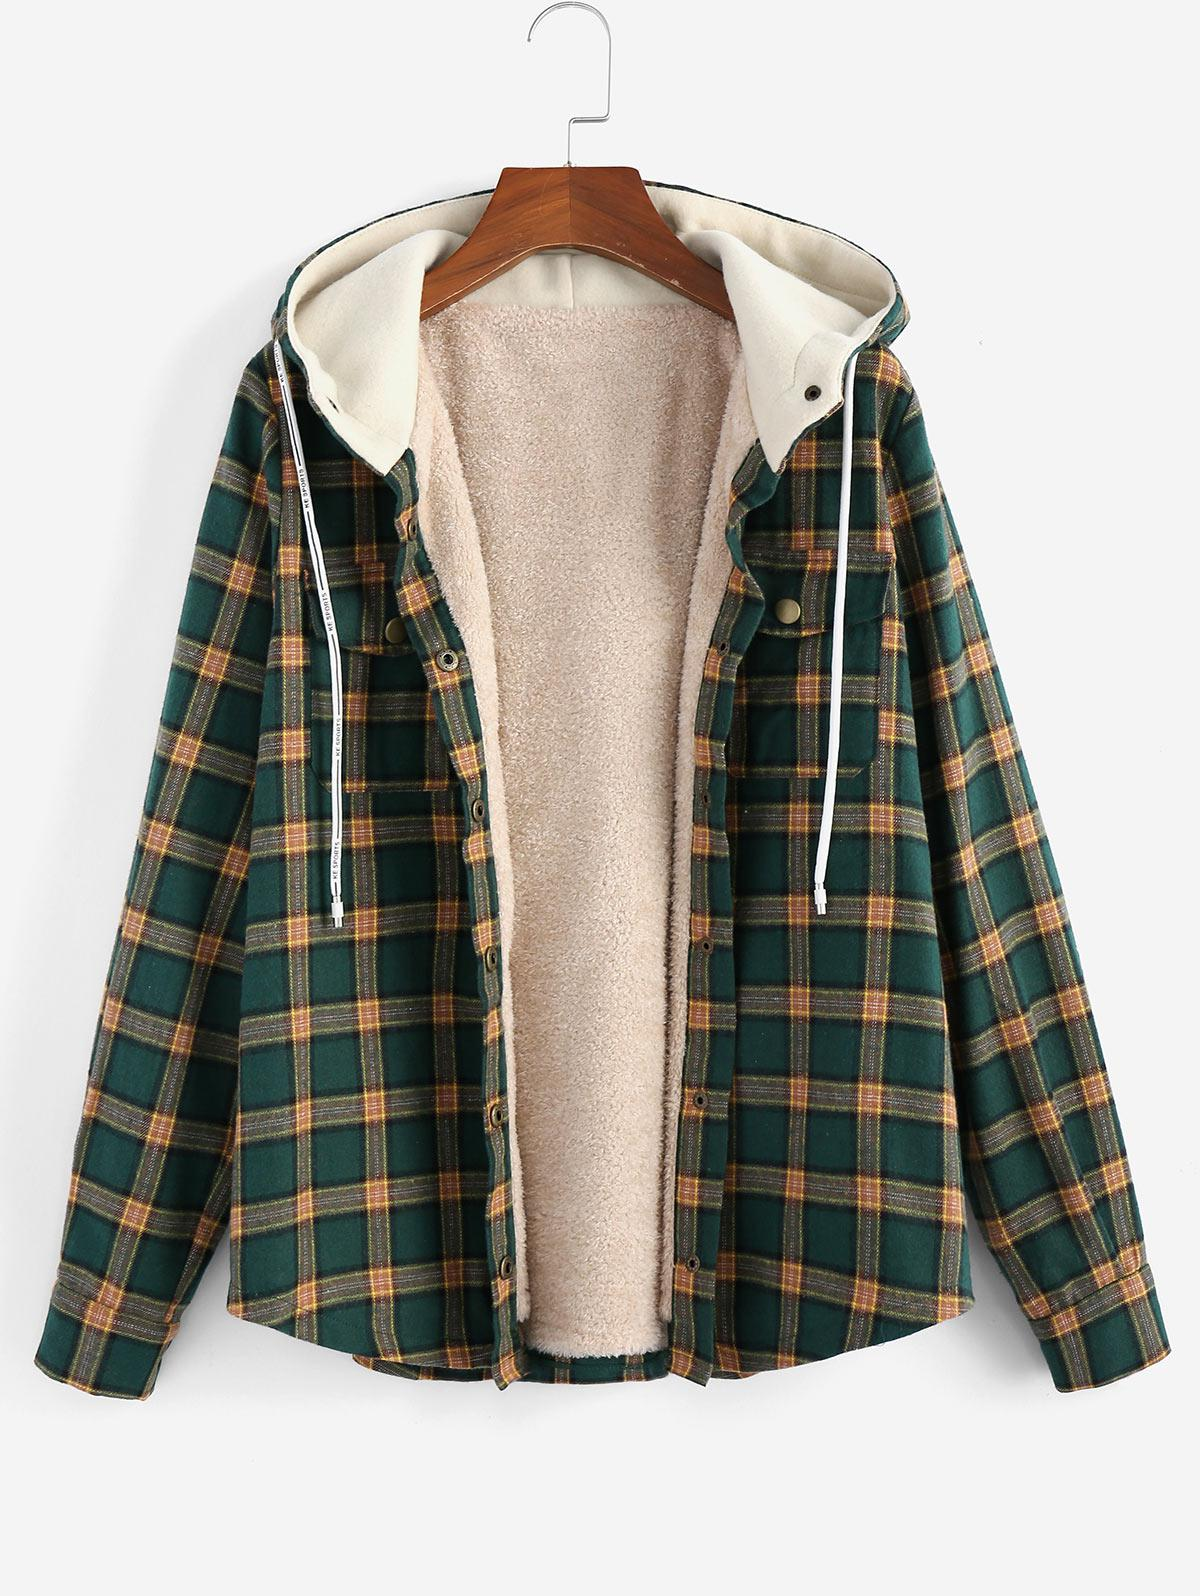 ZAFUL Plaid Hooded Fluffy Lined Snap Button Jacket